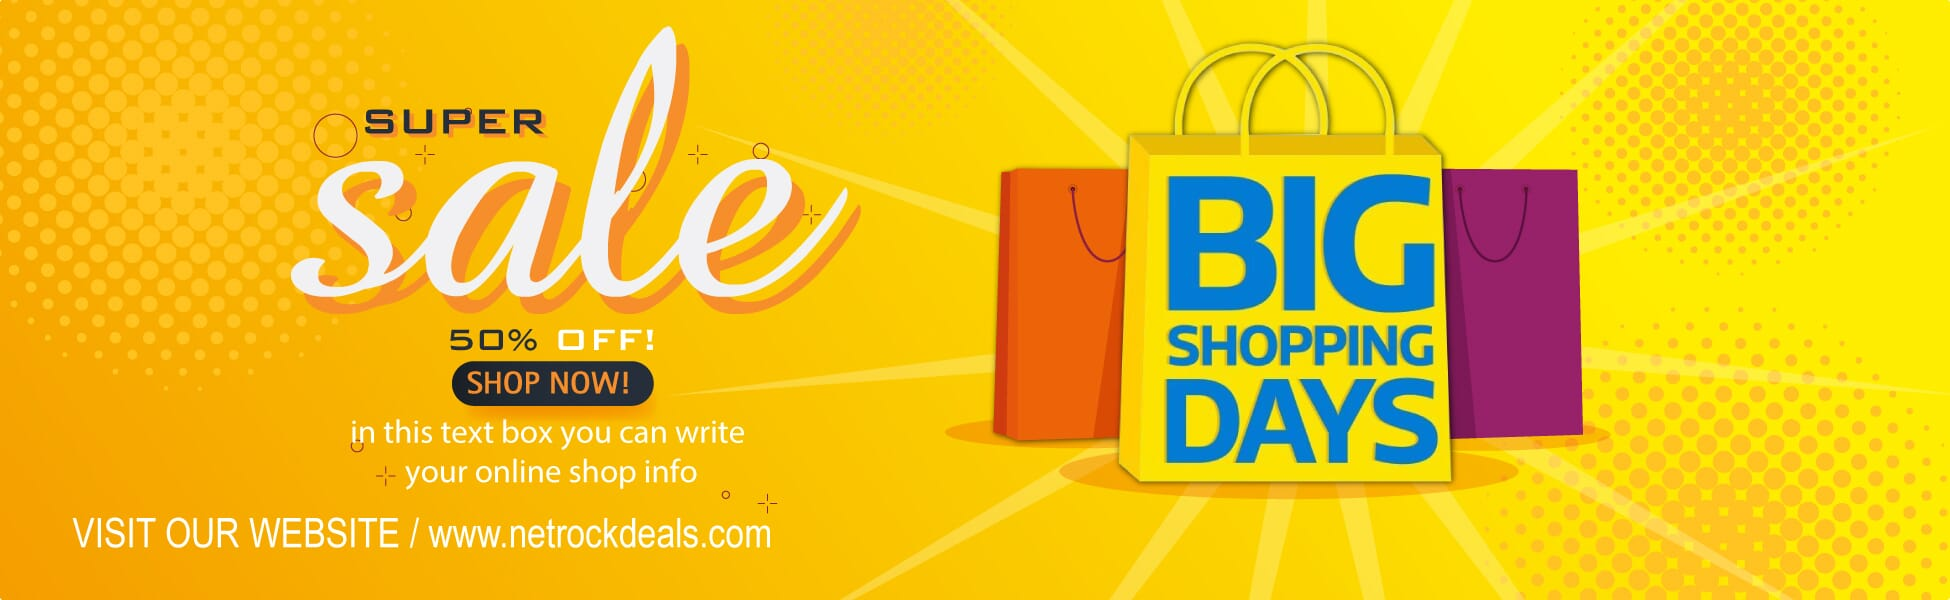 big shopping days sale